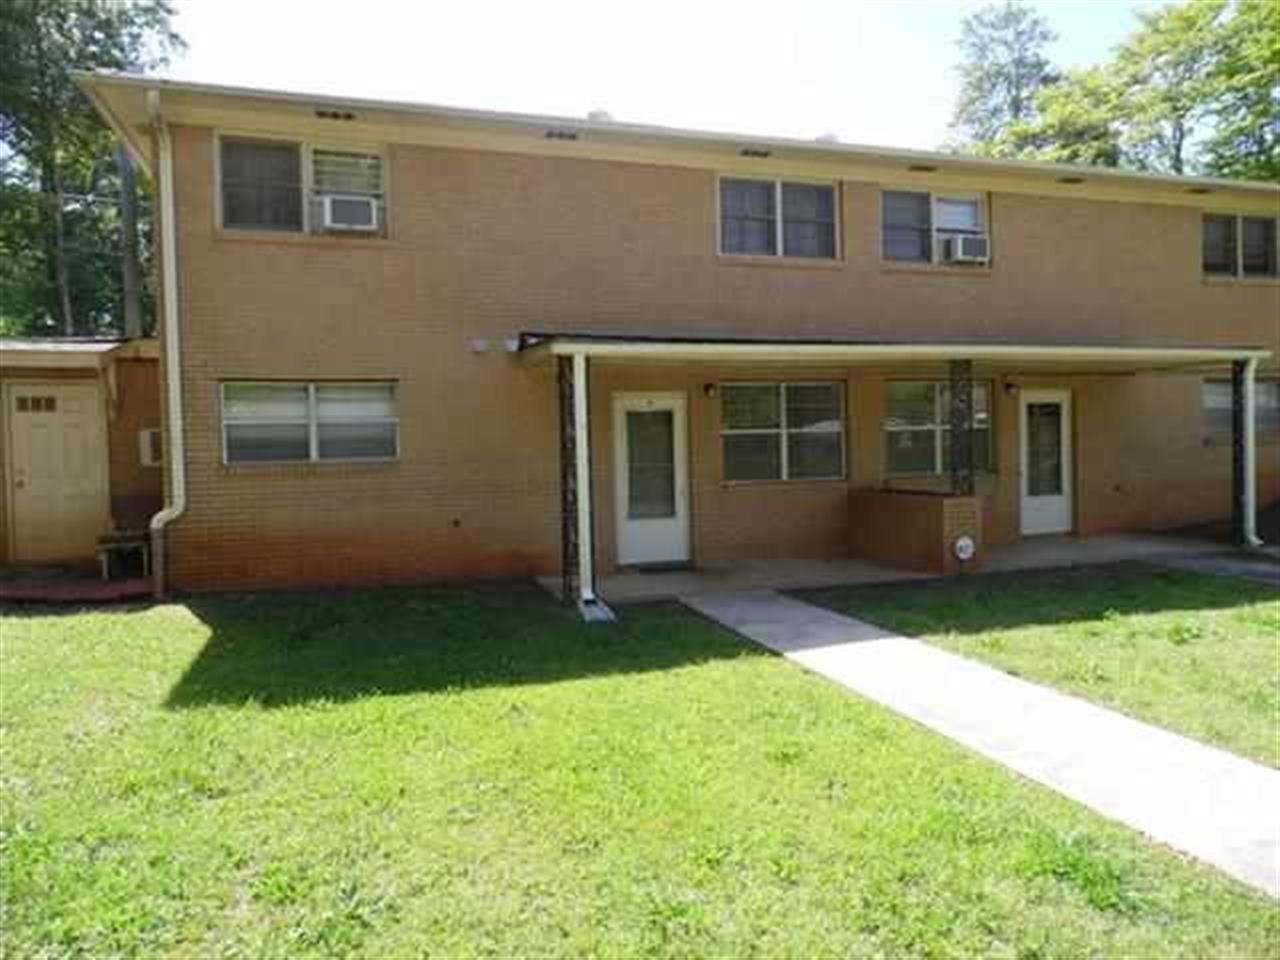 Rental Homes for Rent, ListingId:26837765, location: 401 S Cherry Street Seneca 29678